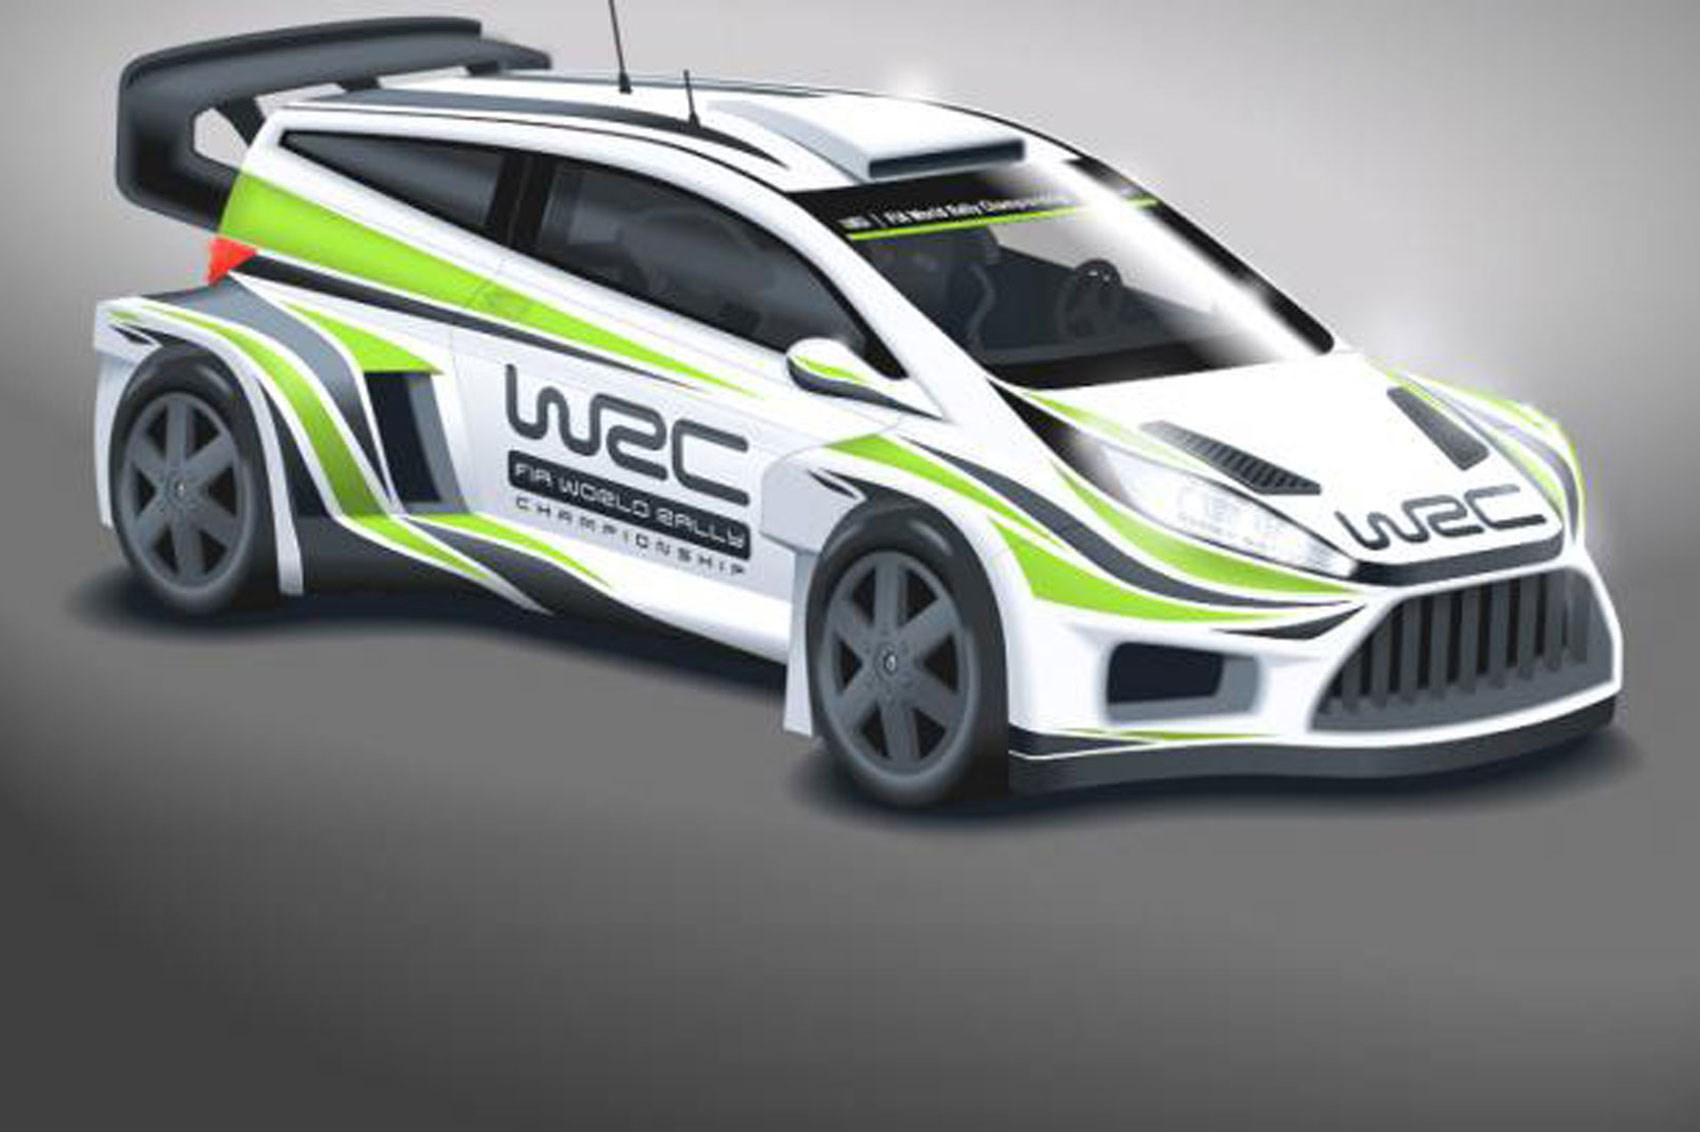 Ultrablogus  Winning Wild New Look For Wrc Cars In  By Car Magazine With Entrancing Wrc Cars Will Get Wider Bodies Bigger Wings And More Power For  With Delightful  Honda Civic Interior Also Lamborghini Diablo Interior In Addition Bmw Gina Interior And Bmw Z Red Interior As Well As Laramie Longhorn Interior Additionally  Honda Hrv Interior From Carmagazinecouk With Ultrablogus  Entrancing Wild New Look For Wrc Cars In  By Car Magazine With Delightful Wrc Cars Will Get Wider Bodies Bigger Wings And More Power For  And Winning  Honda Civic Interior Also Lamborghini Diablo Interior In Addition Bmw Gina Interior From Carmagazinecouk